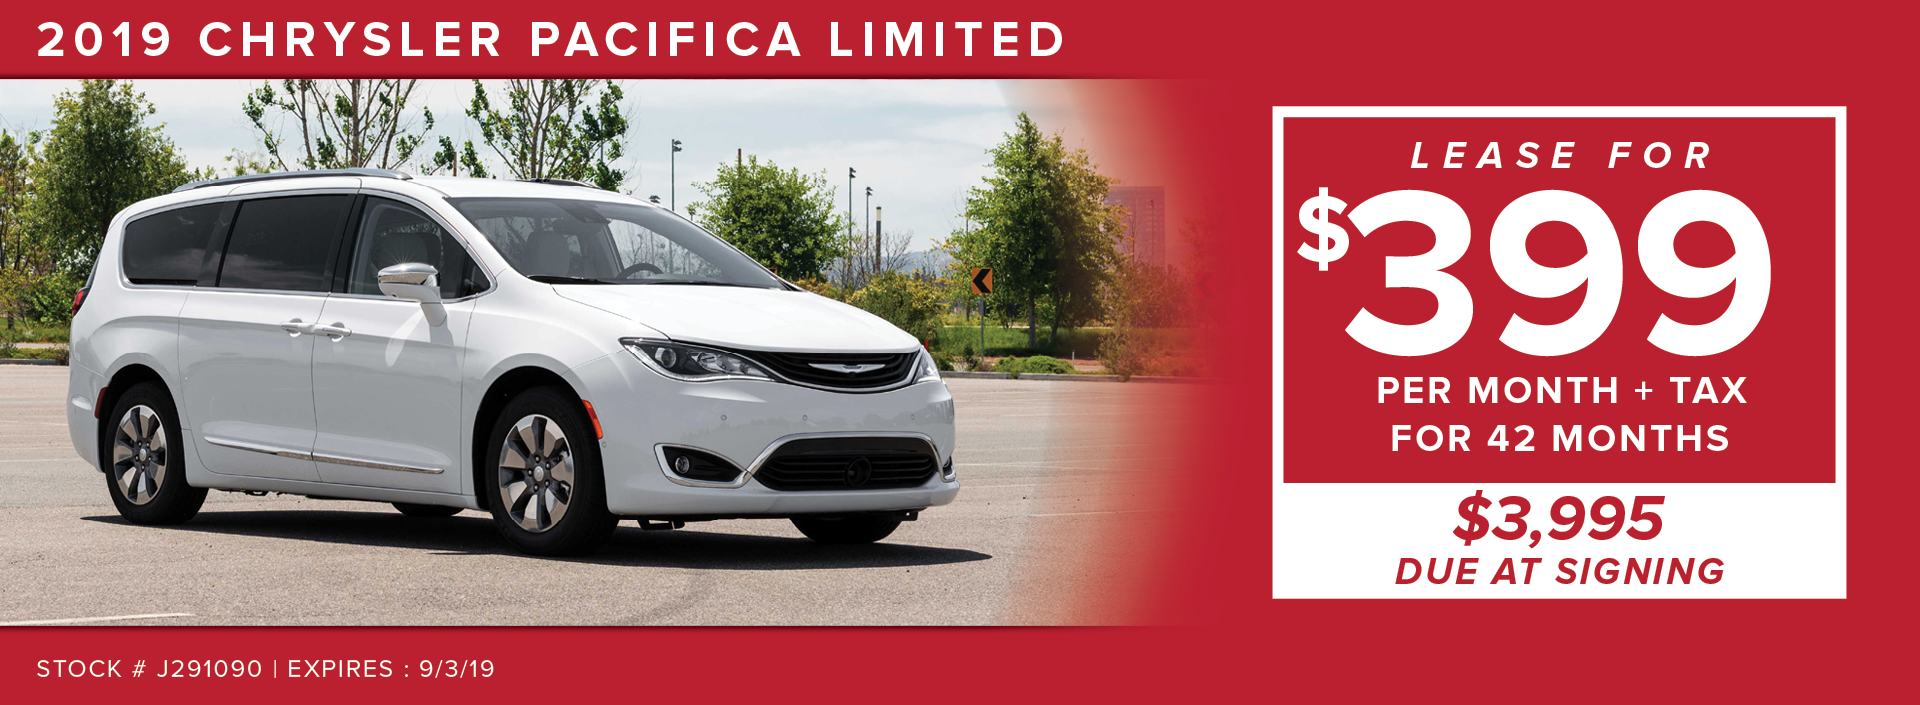 on approved, above average credit  based on 10,000 miles per year $0 25 per  excess mile  monthly payment includes dealer documentation fee and  acquisition